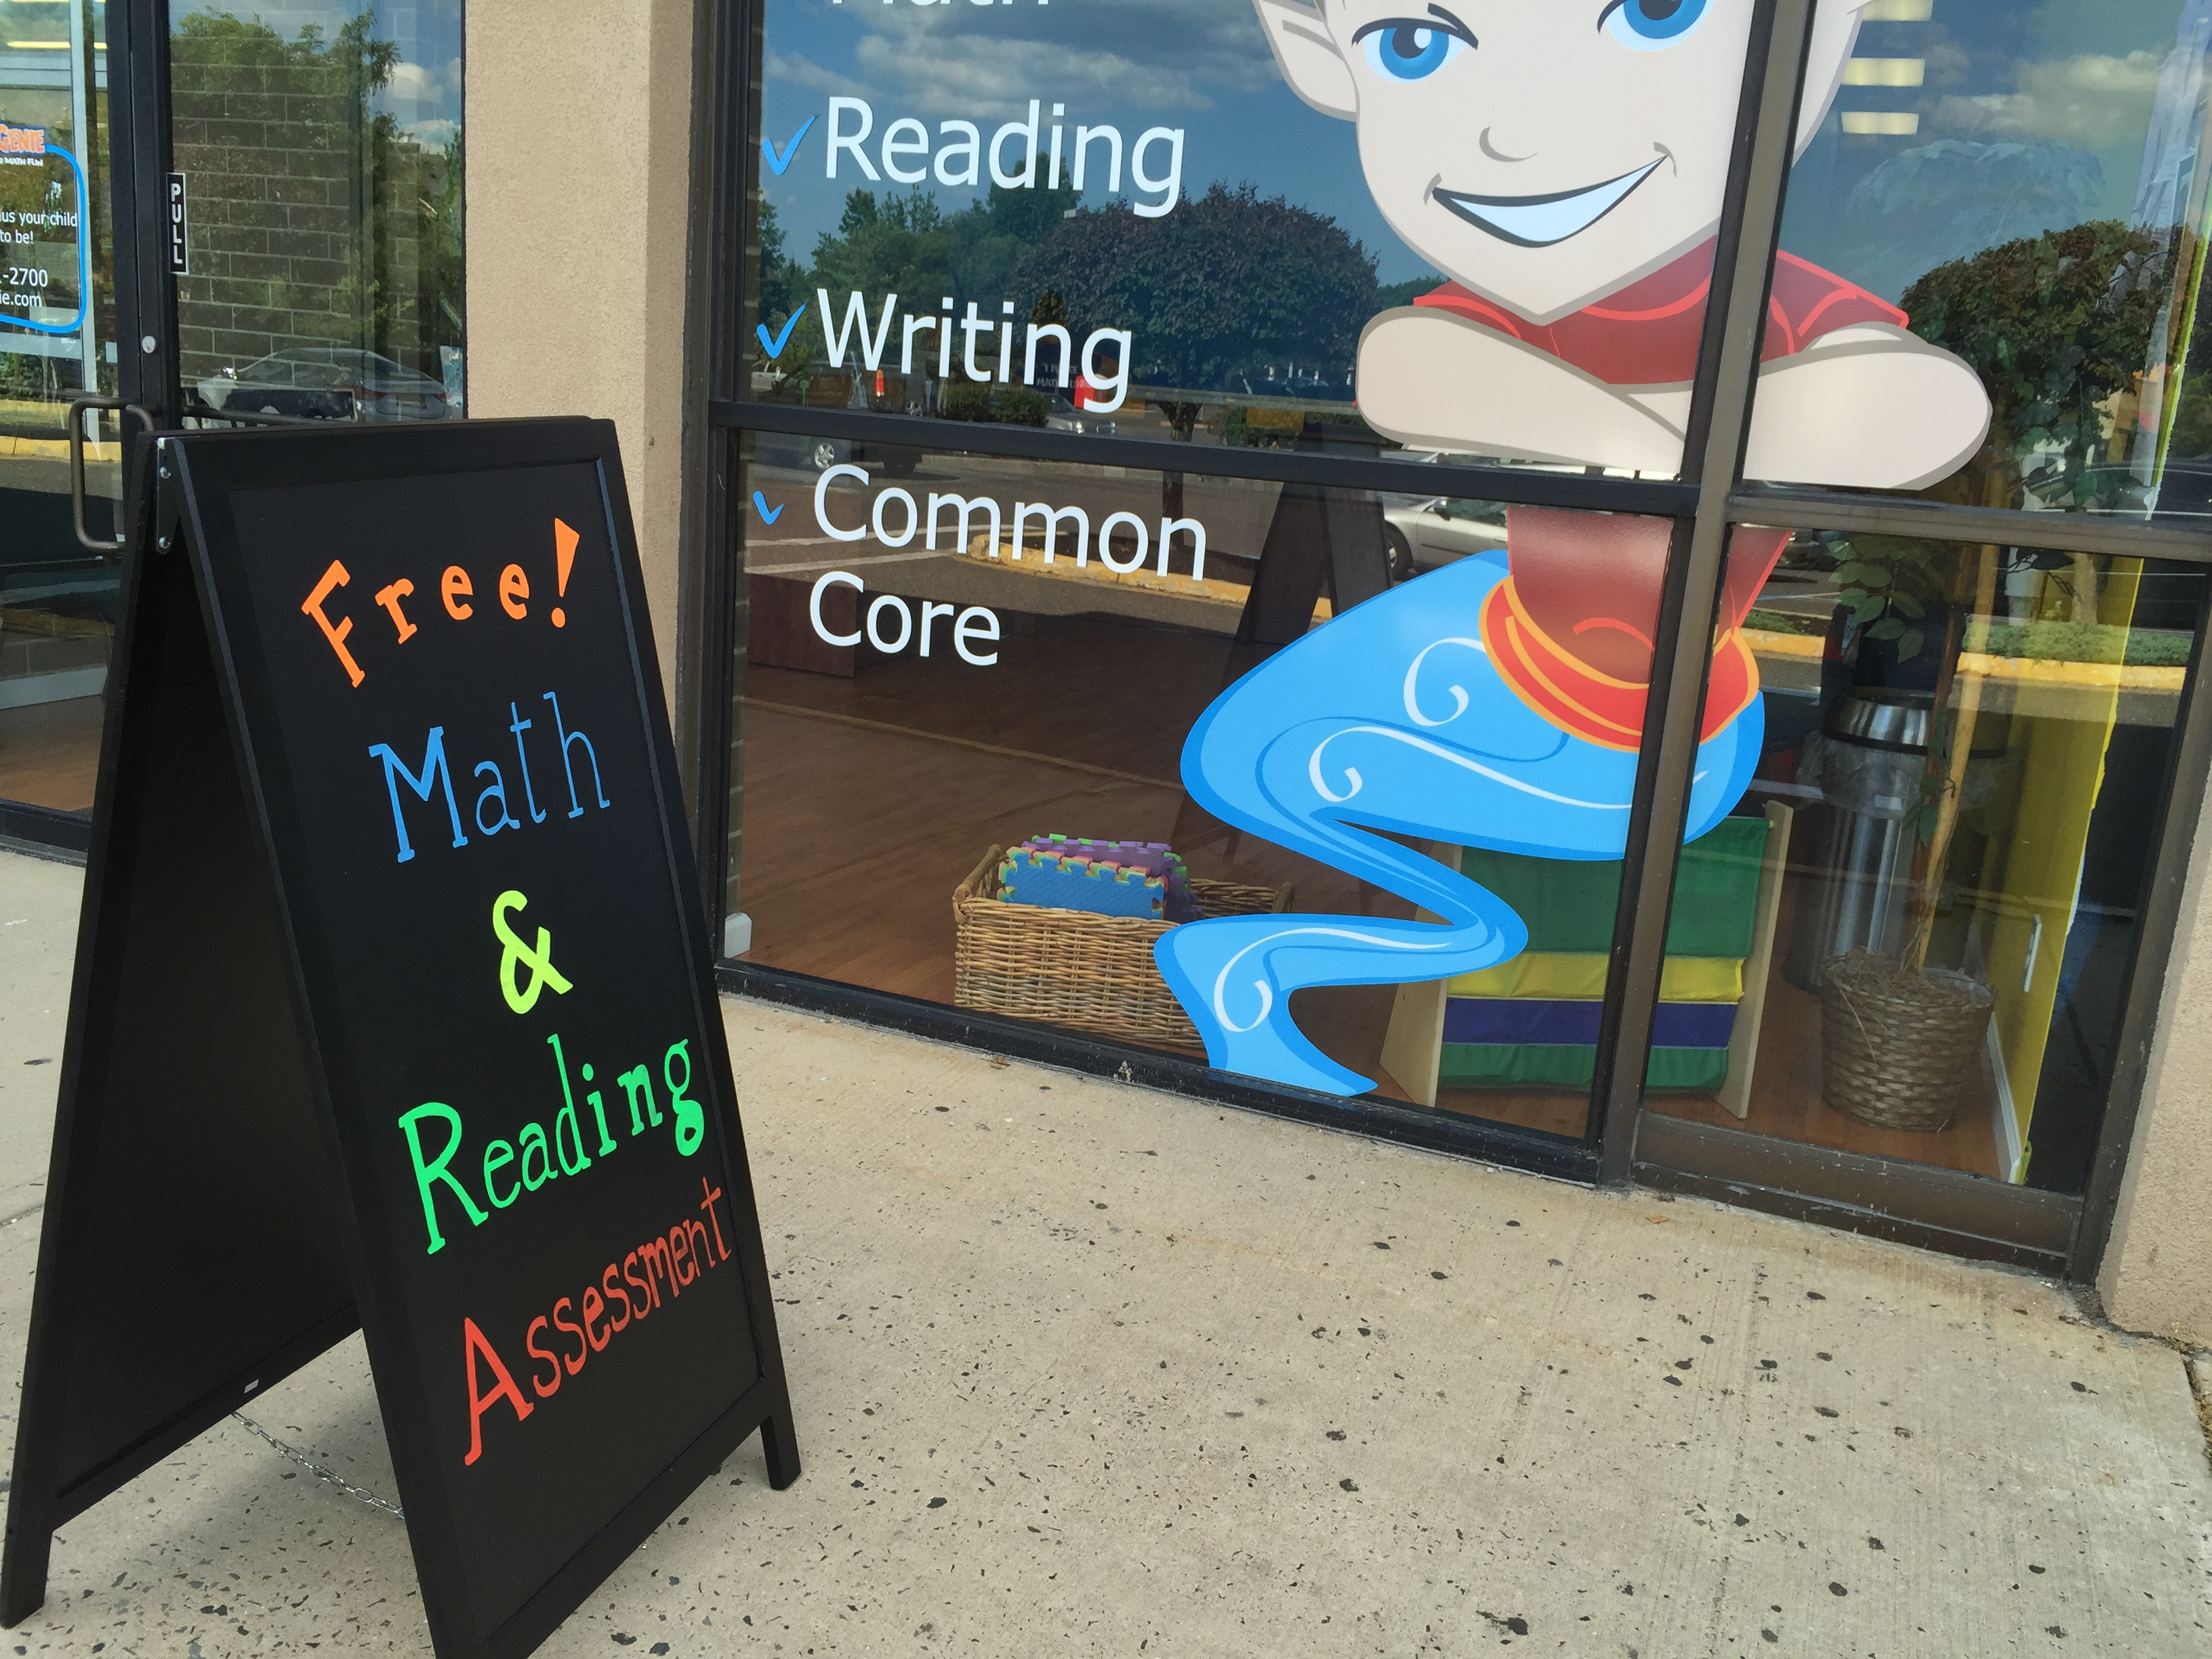 Math Genie East Brunswick Free Math and Reading Assessments